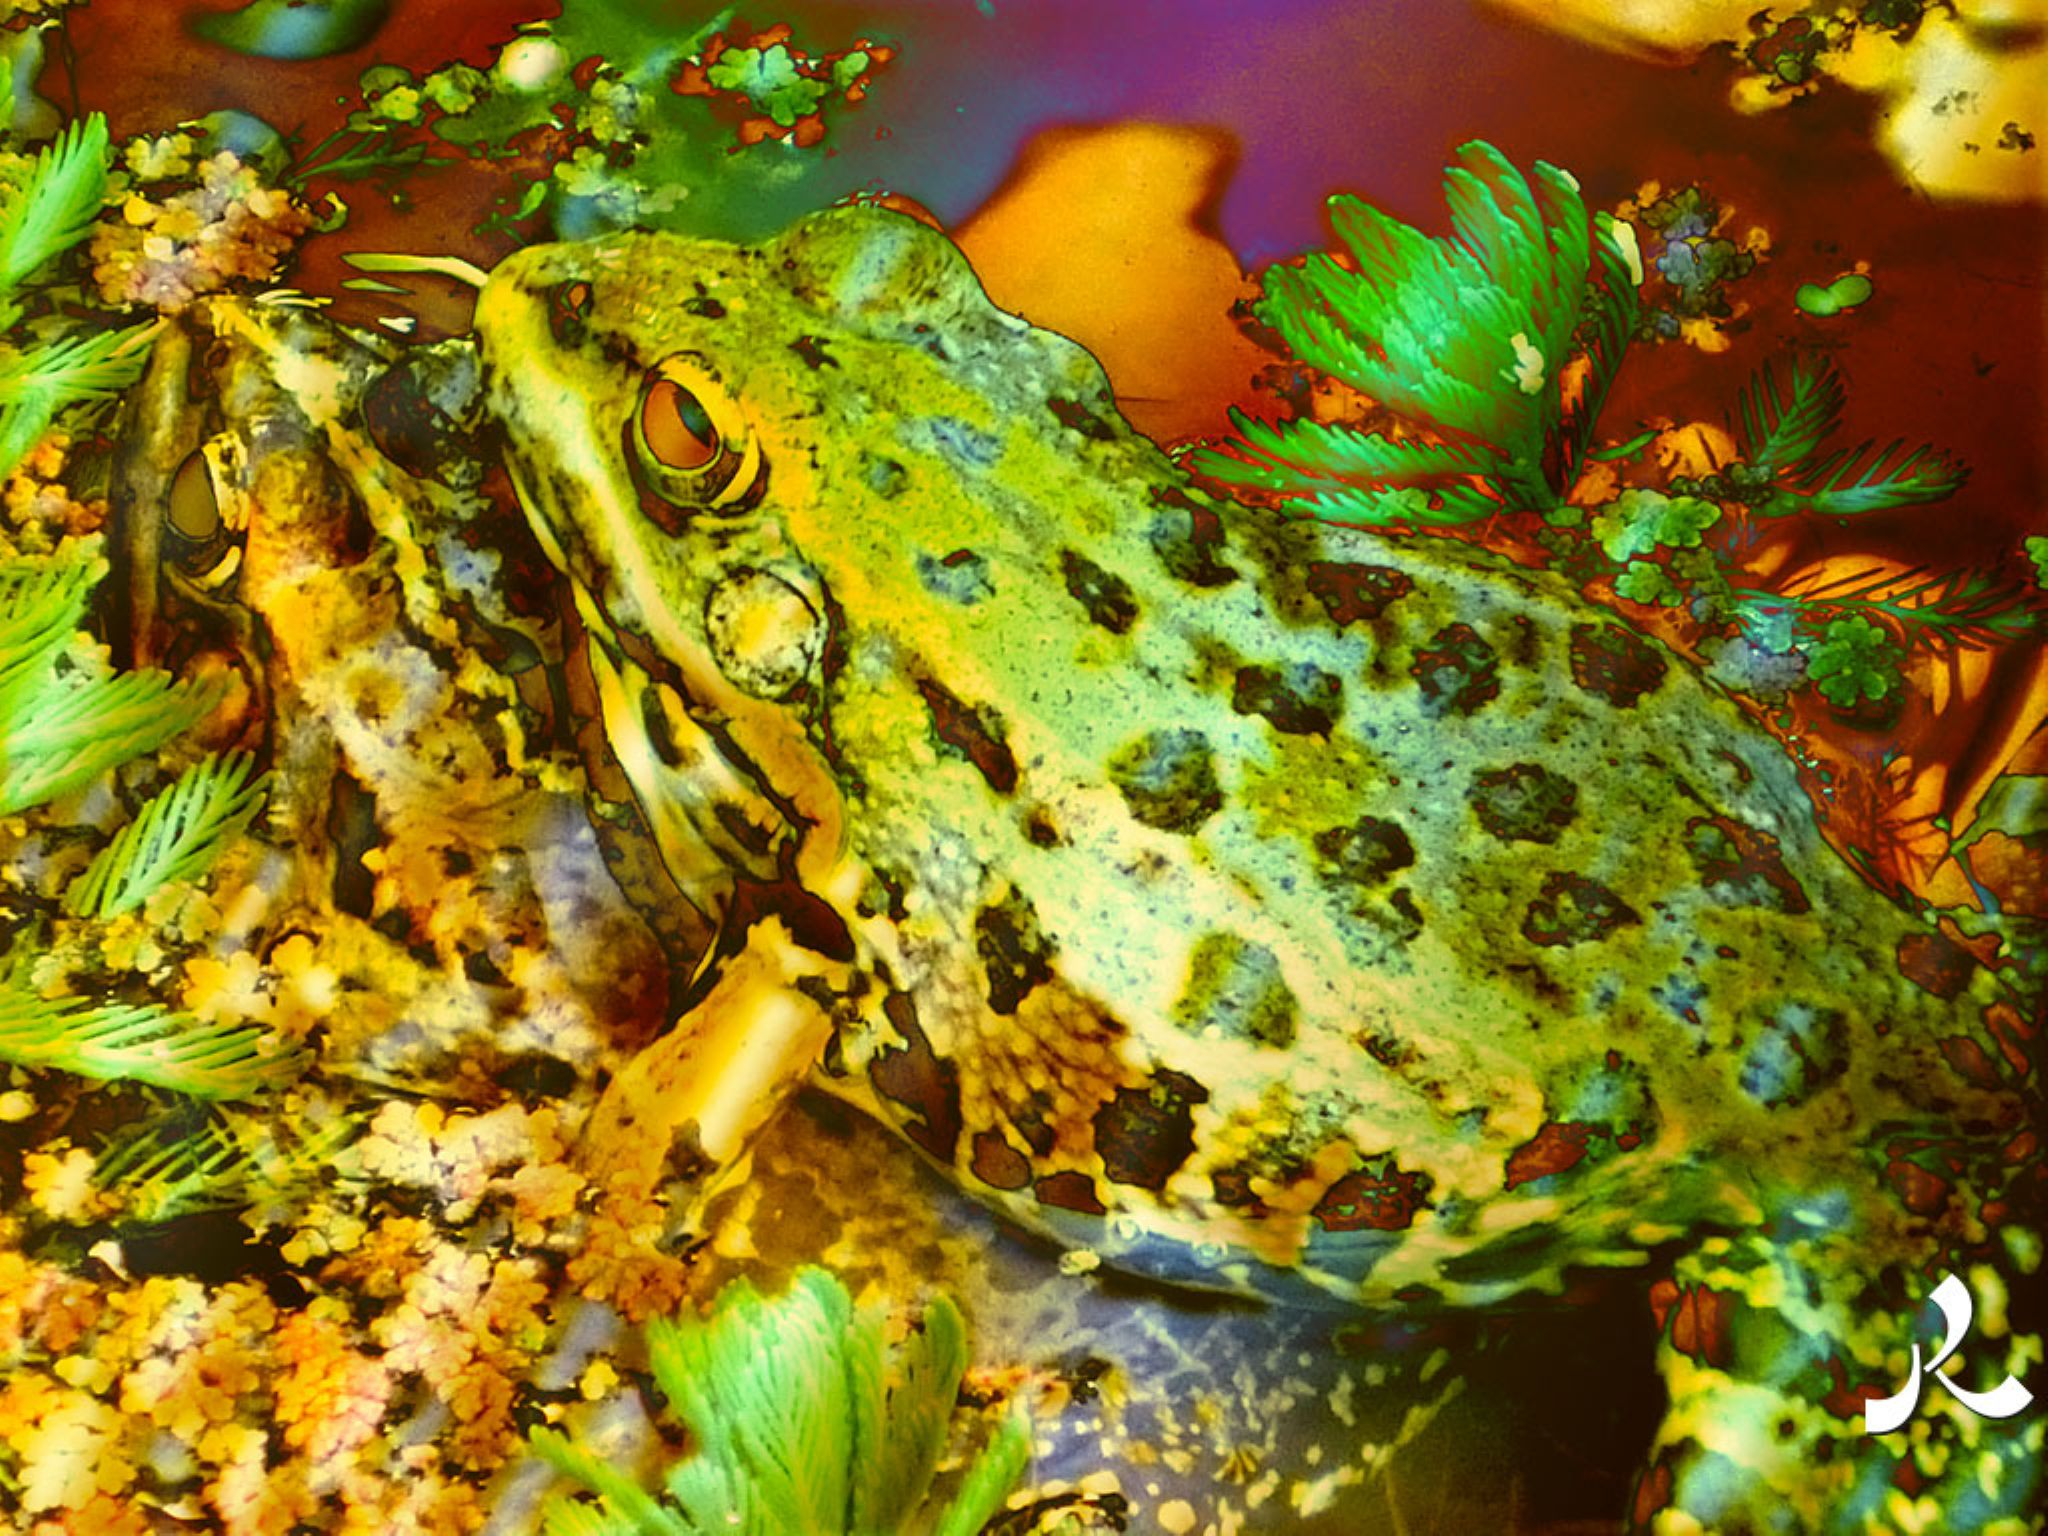 2frogs902-15iwor by jacquesraffin